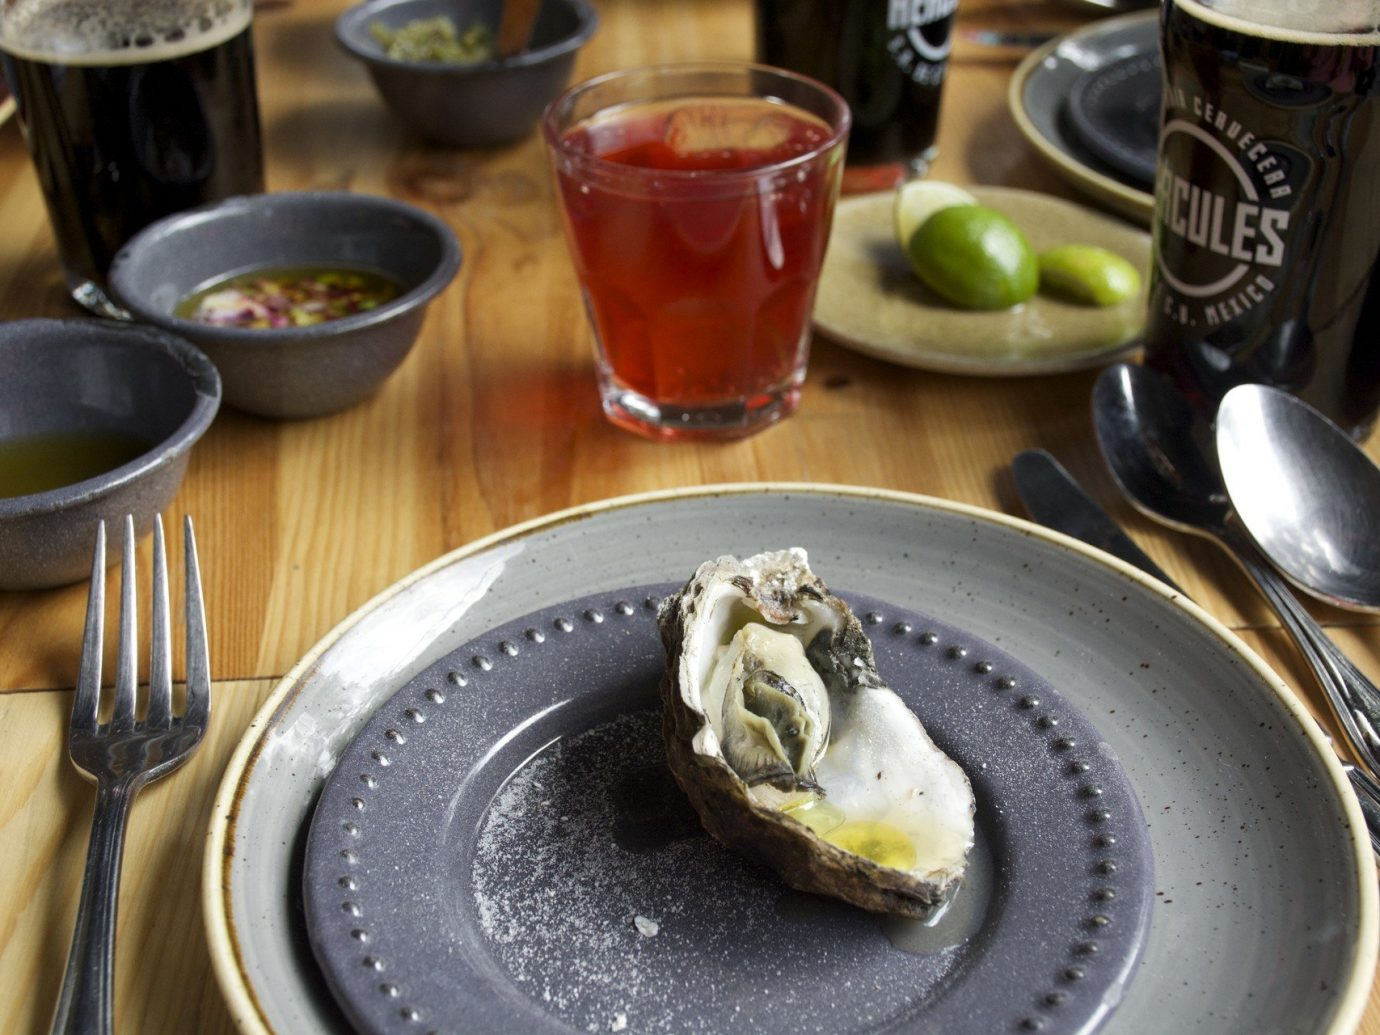 Dining Eat food Food + Drink Jetsetter Guides local eats oysters restaurant table Trip Ideas dish plate meal cuisine lunch chocolate breakfast sense mussel Seafood brunch produce Drink asian food dessert eaten